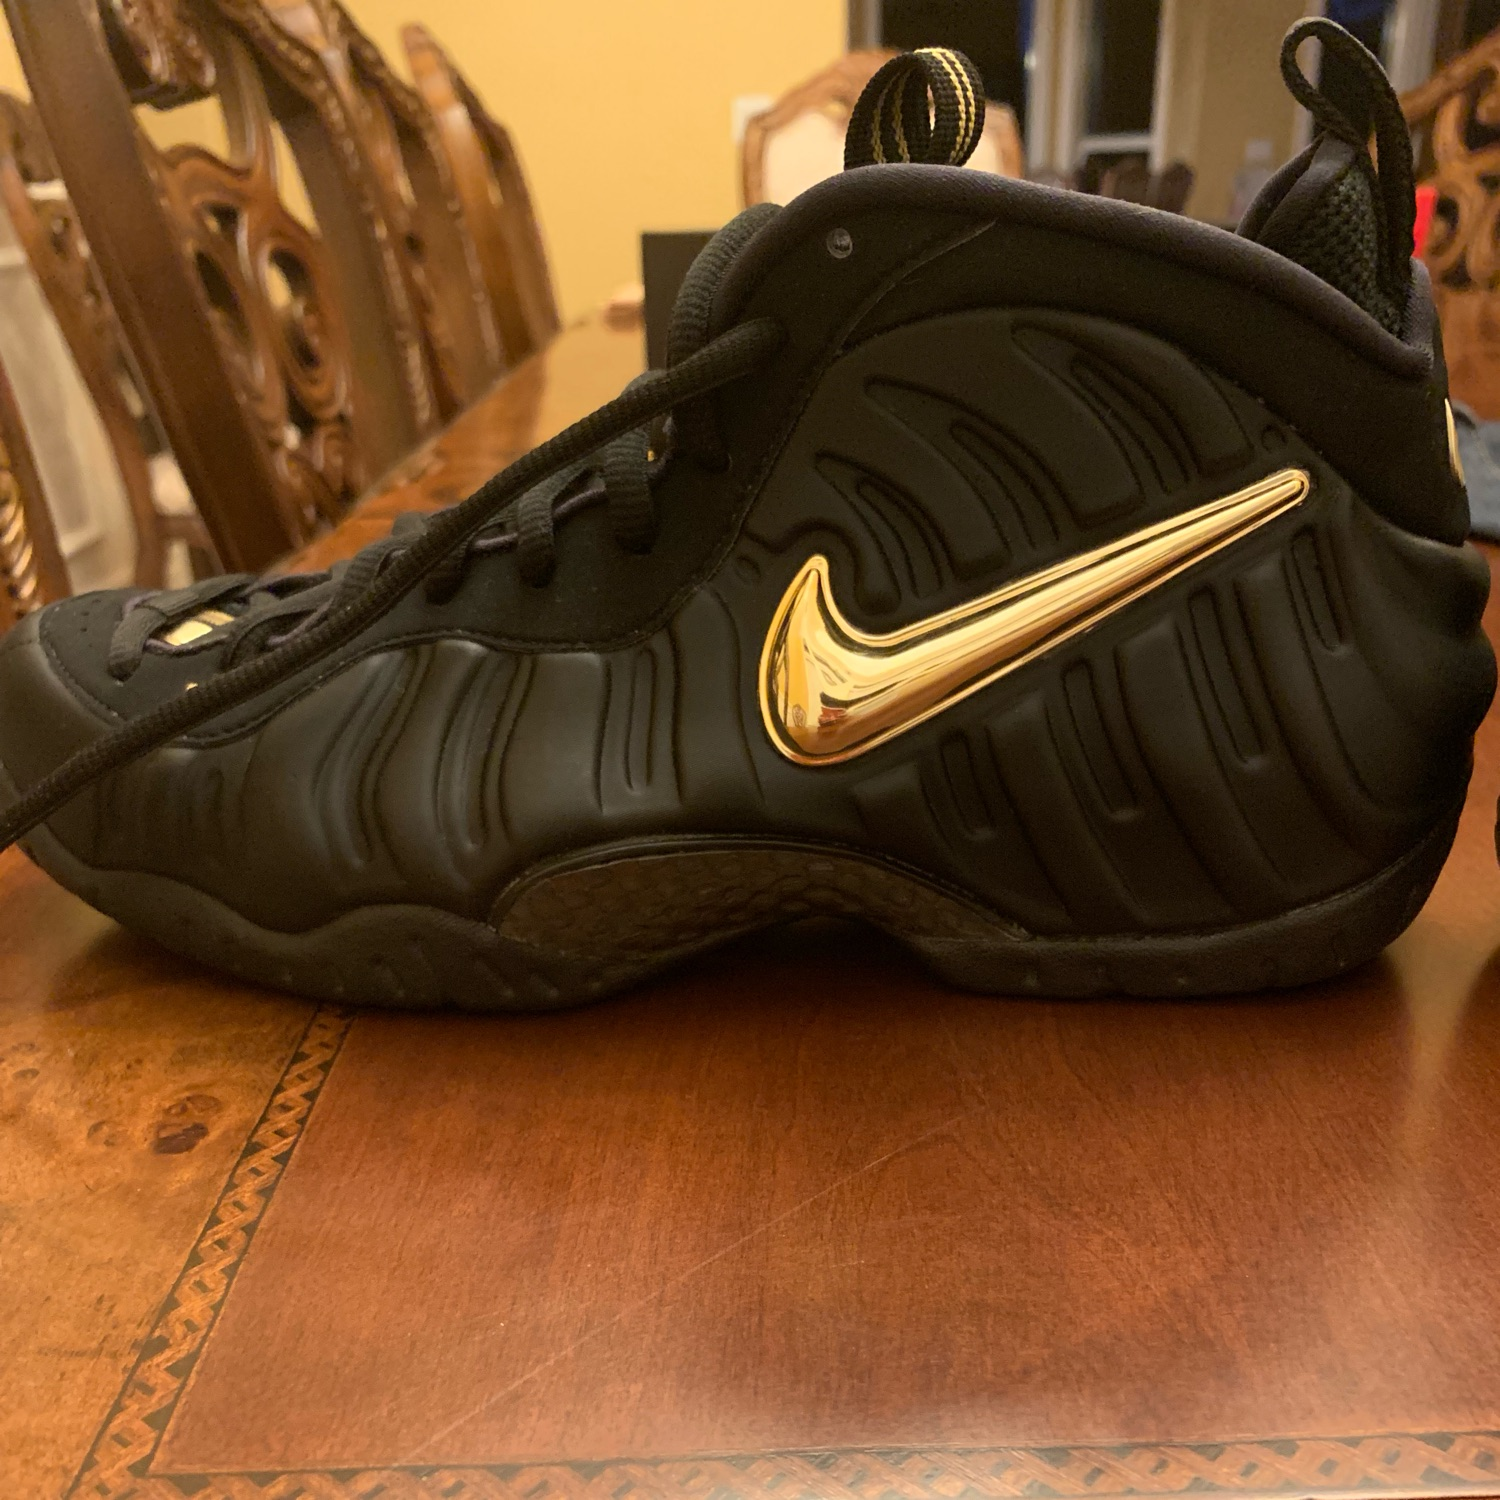 low priced af253 1a557 Nike Air Foamposite Pro Black Metallic Gold Size 9